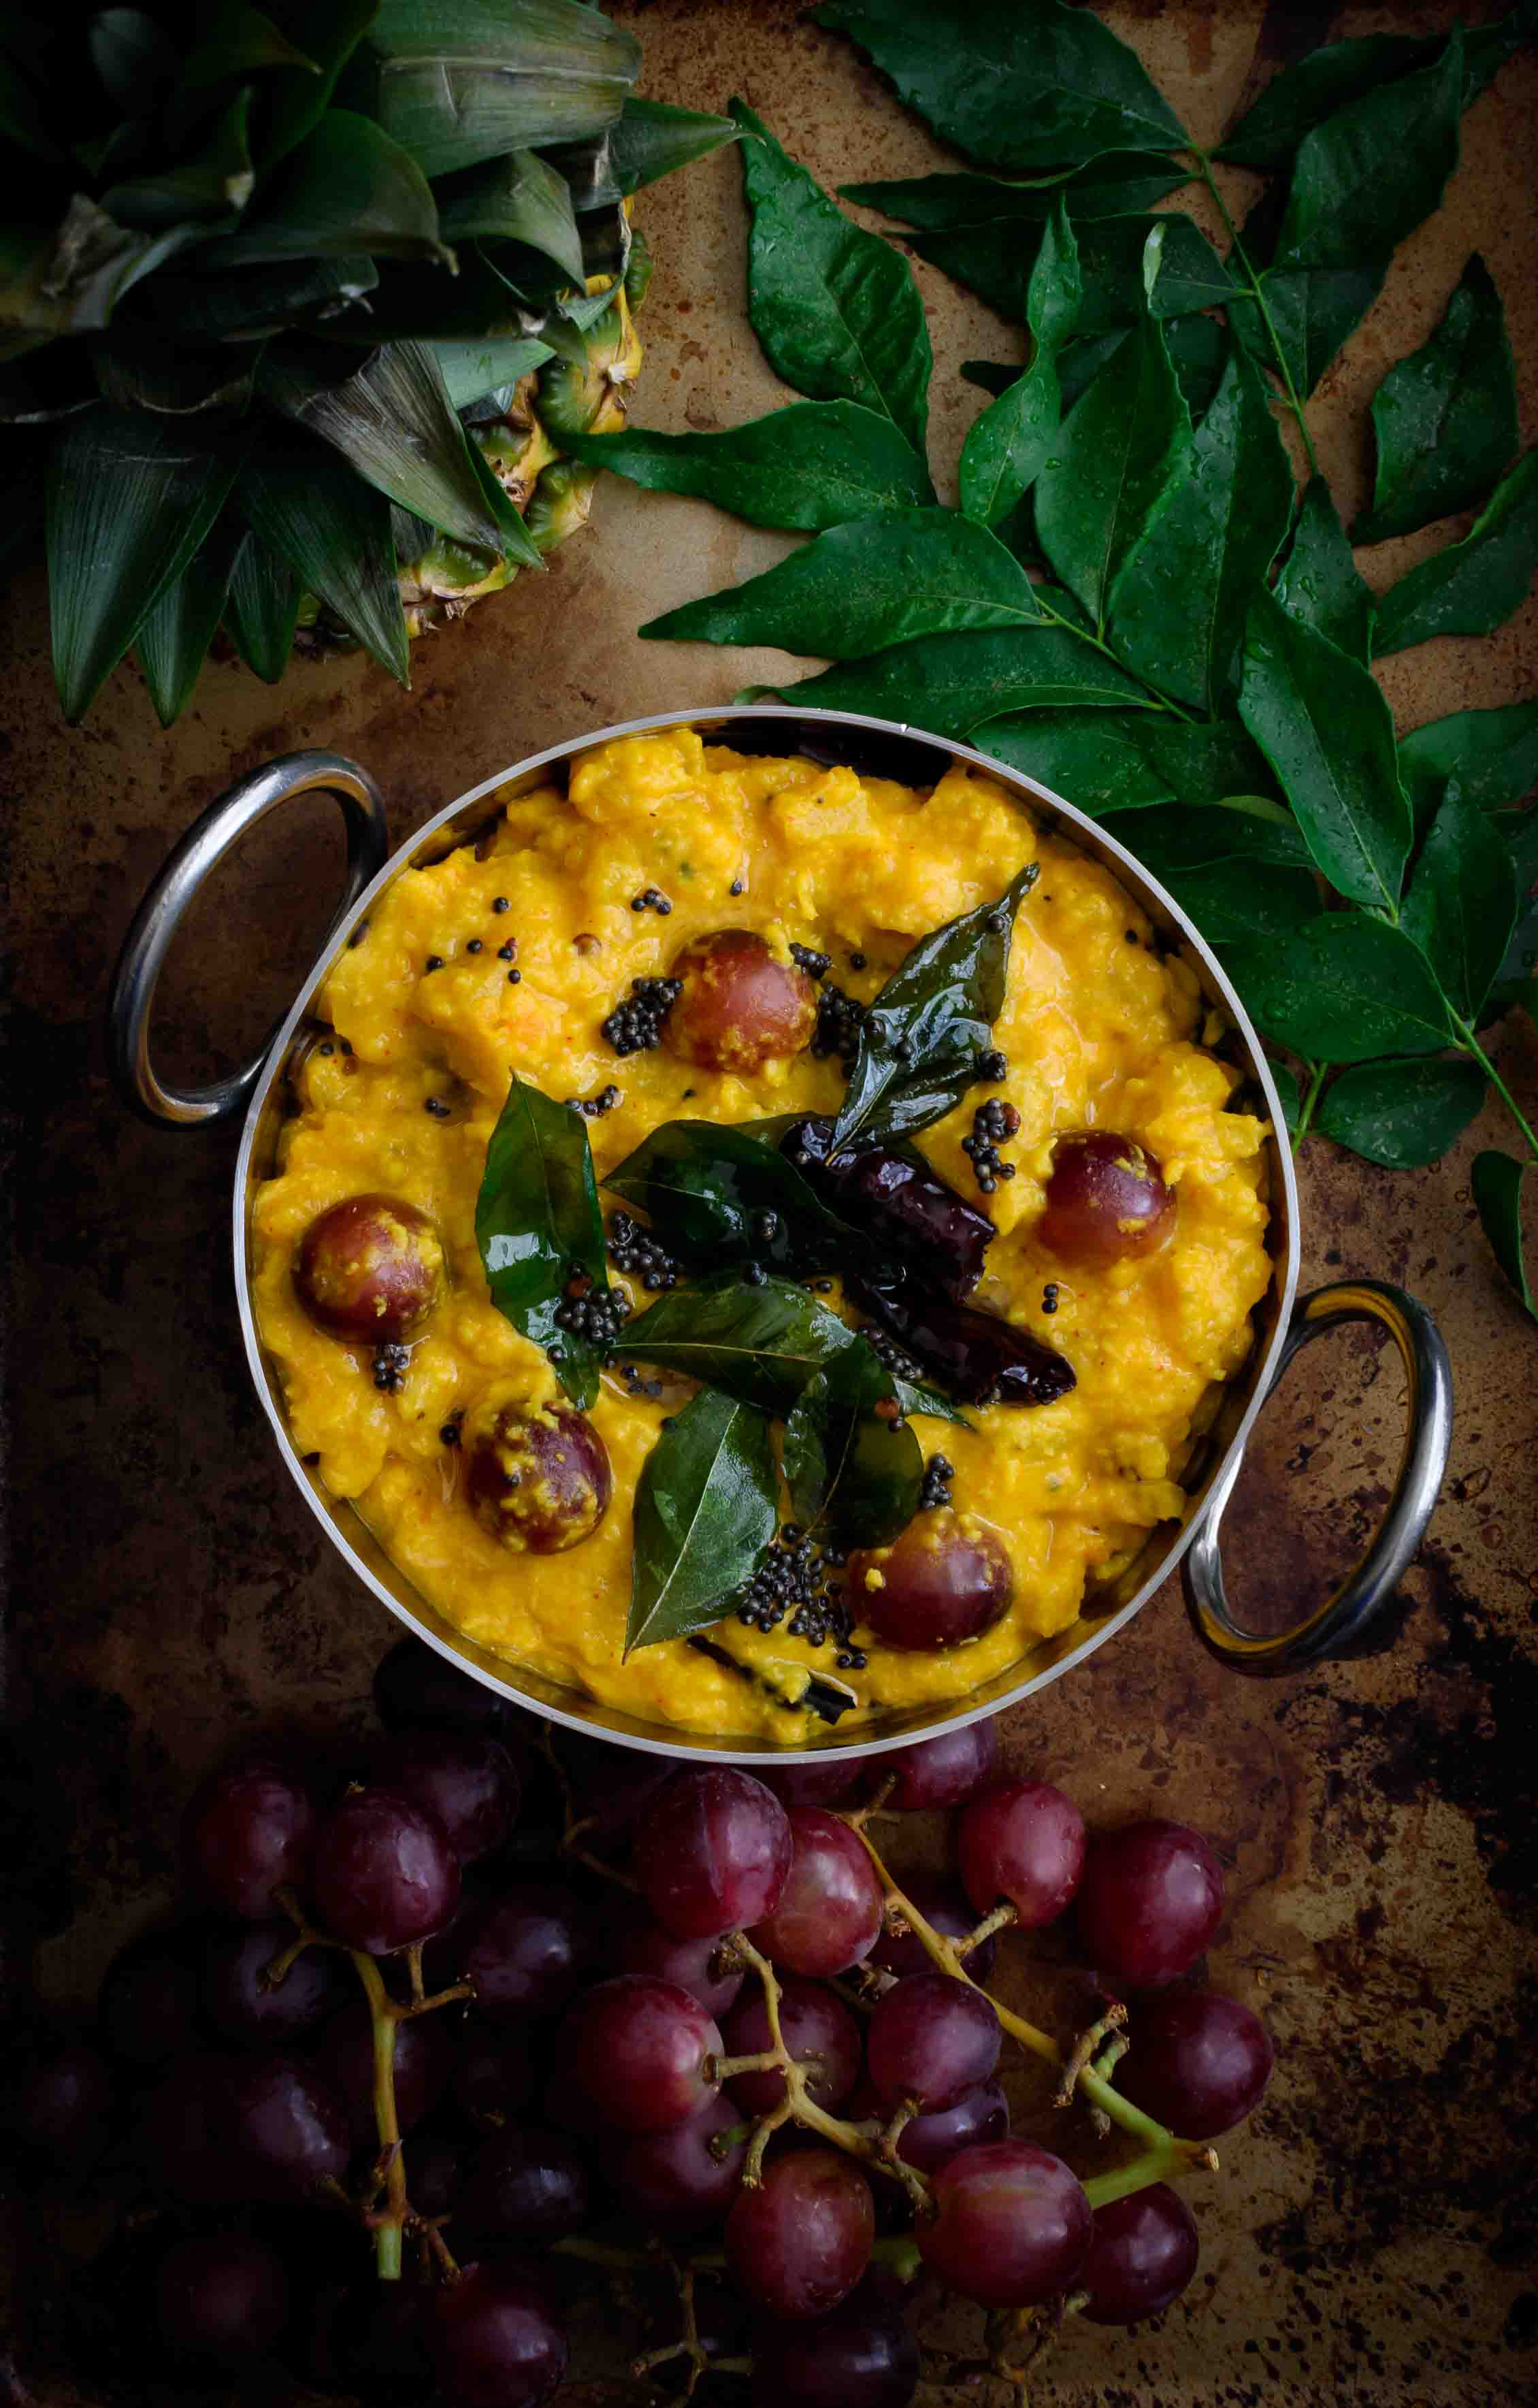 Madhura curry pineapple grapes curry pepper delight madhura curry pepper delight pepperdelightblog recipe madhuracurry pineapplecurry keralafood forumfinder Gallery